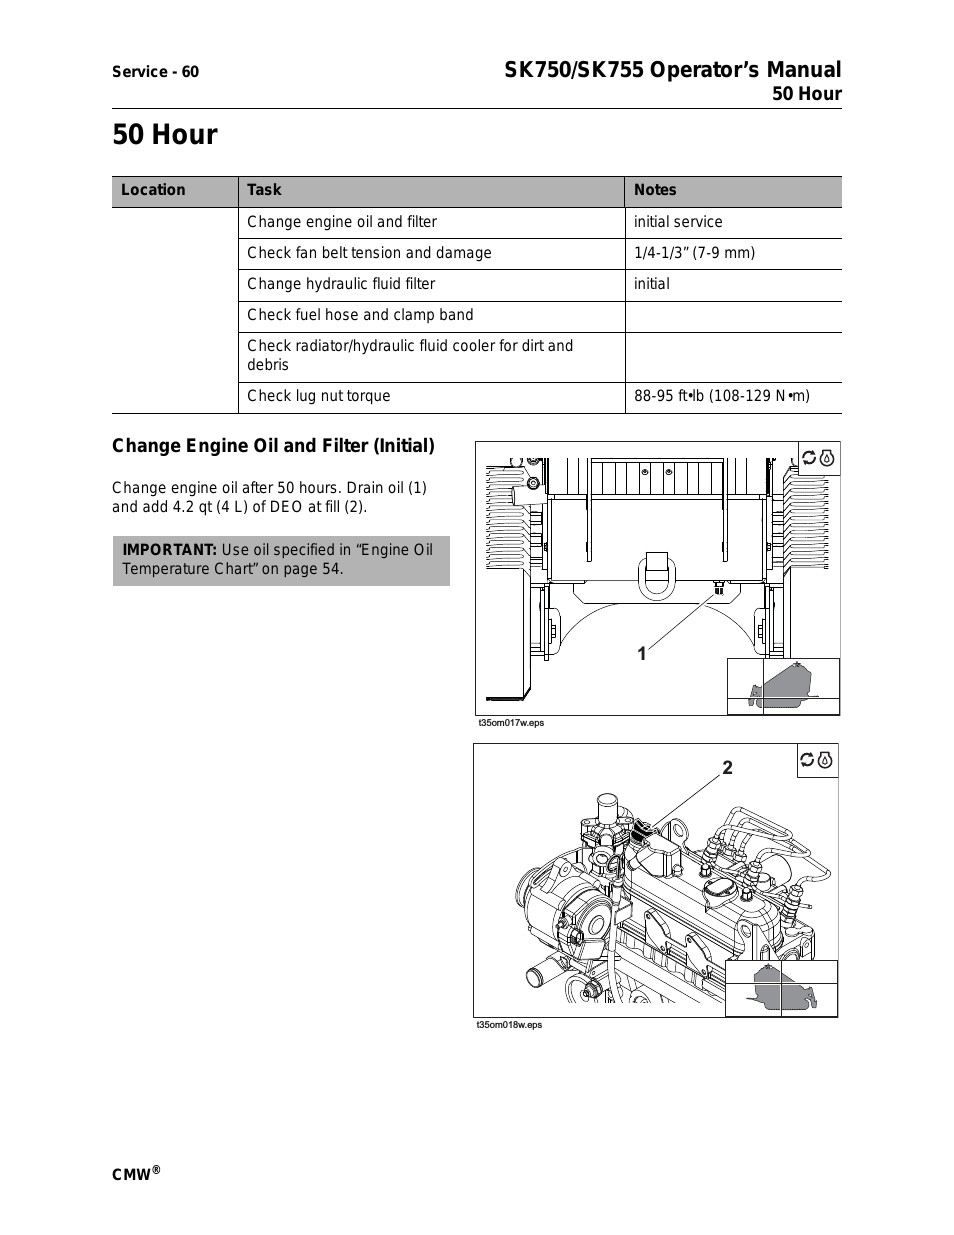 Ditch Witch 410sx Wiring Diagram 50 Hour Ditch Witch Sk750 Sk755 User Manual Of Ditch Witch 410sx Wiring Diagram